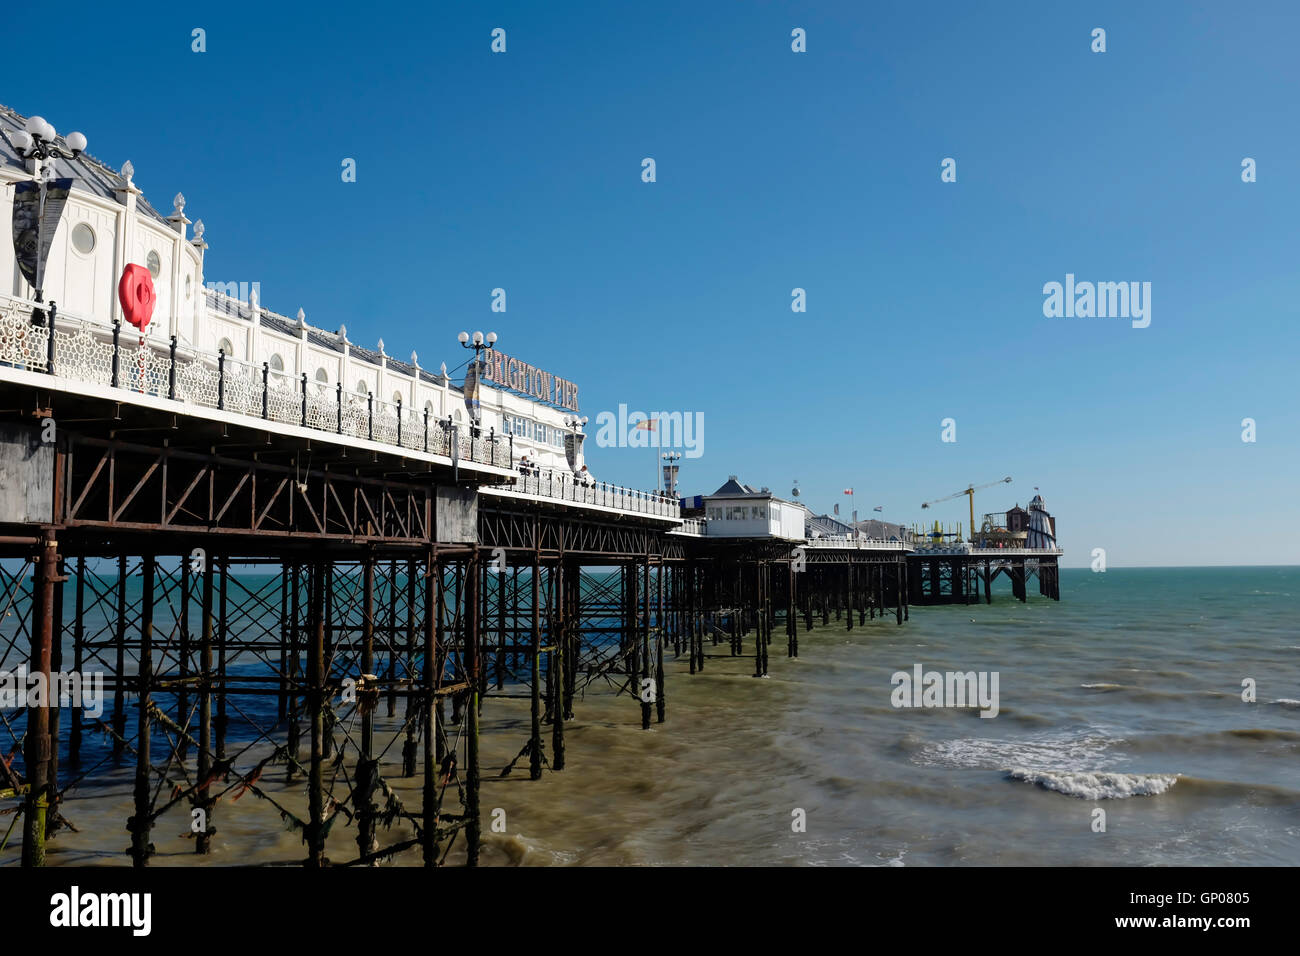 Brighton Pier, Bighton Beach, Sussex,United Kingdom Stock Photo